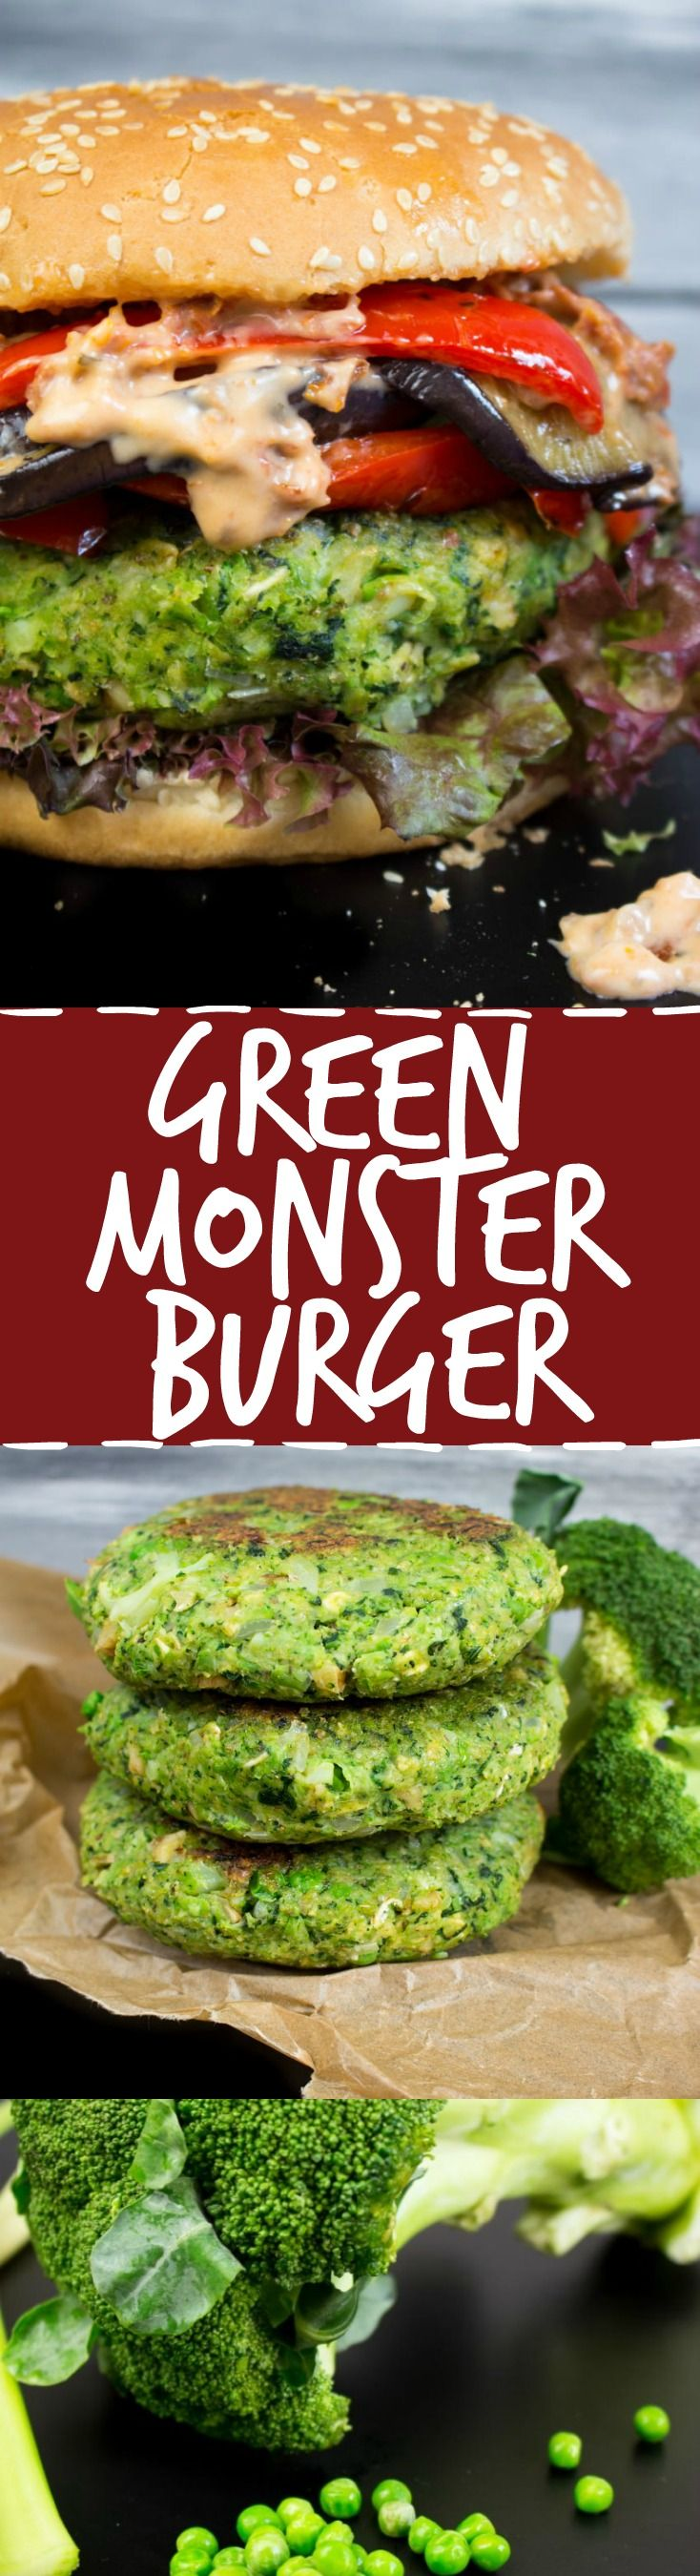 »Green monster veggie burger with grilled eggplant, red bell pepper, and sun-dried tomato mayo. The green patty is made of kale, peas, broccoli, and celery